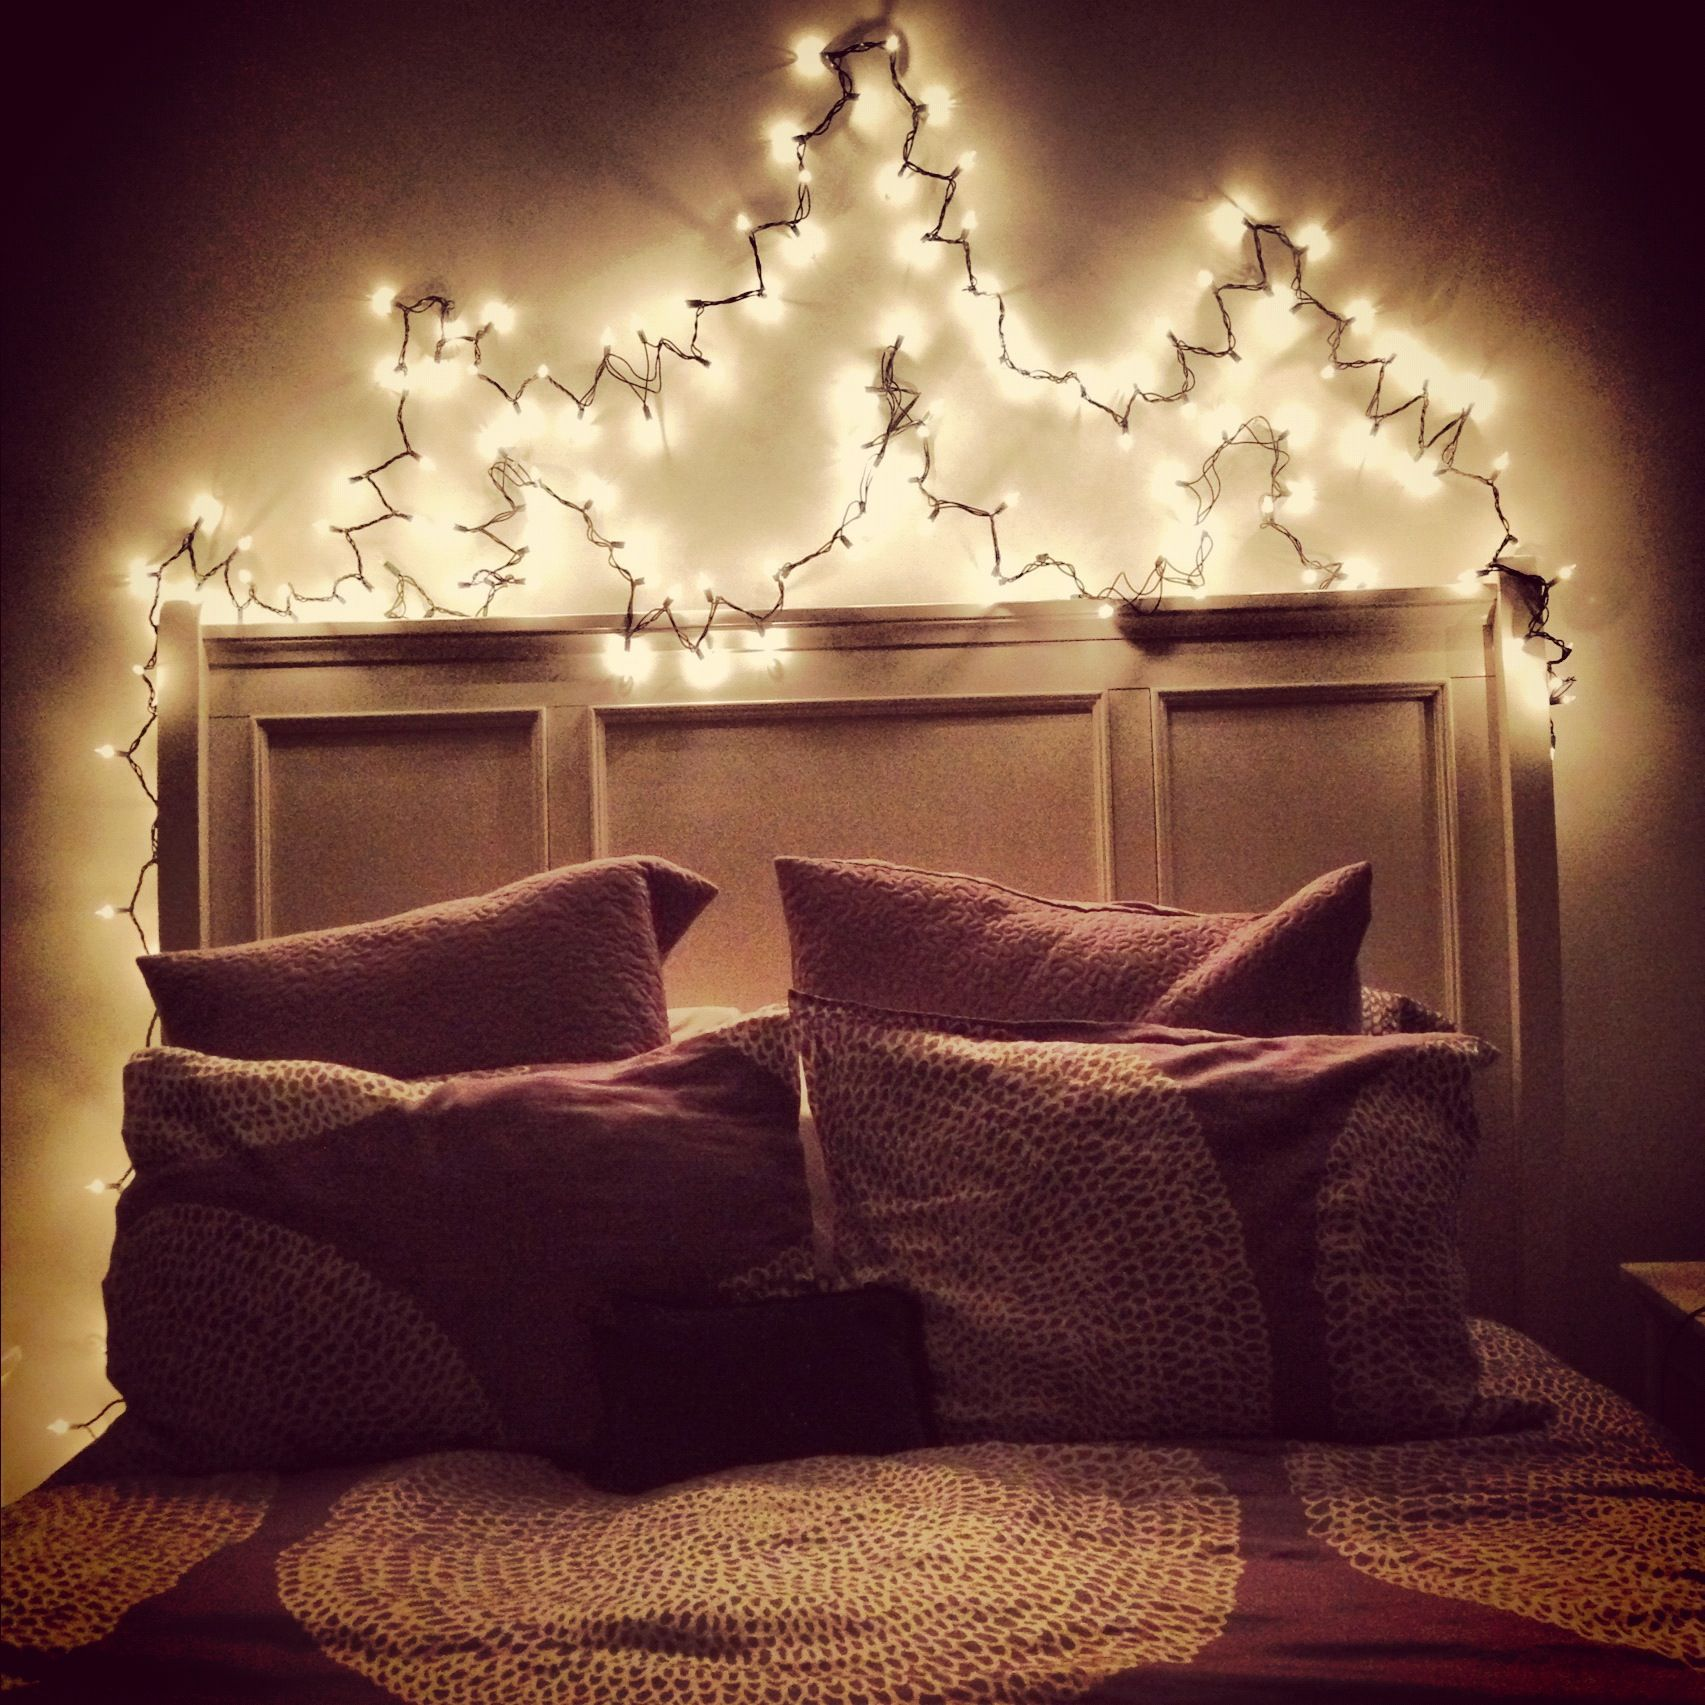 Over The Bed Light Fixtures Christmas Lights Over Your Bed I Have This And I Love It